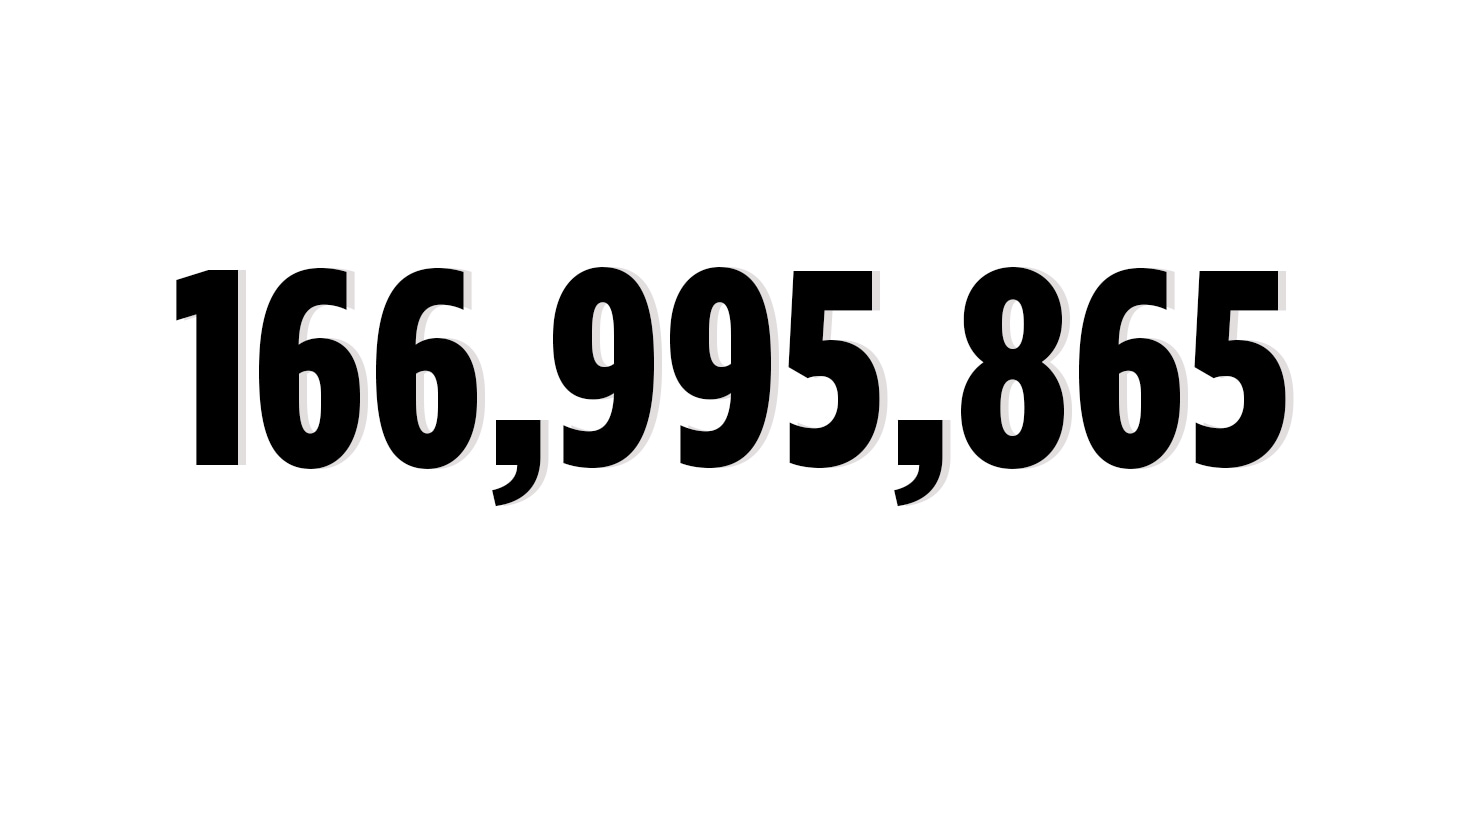 The amount, in dollars, won by Titleist golf...